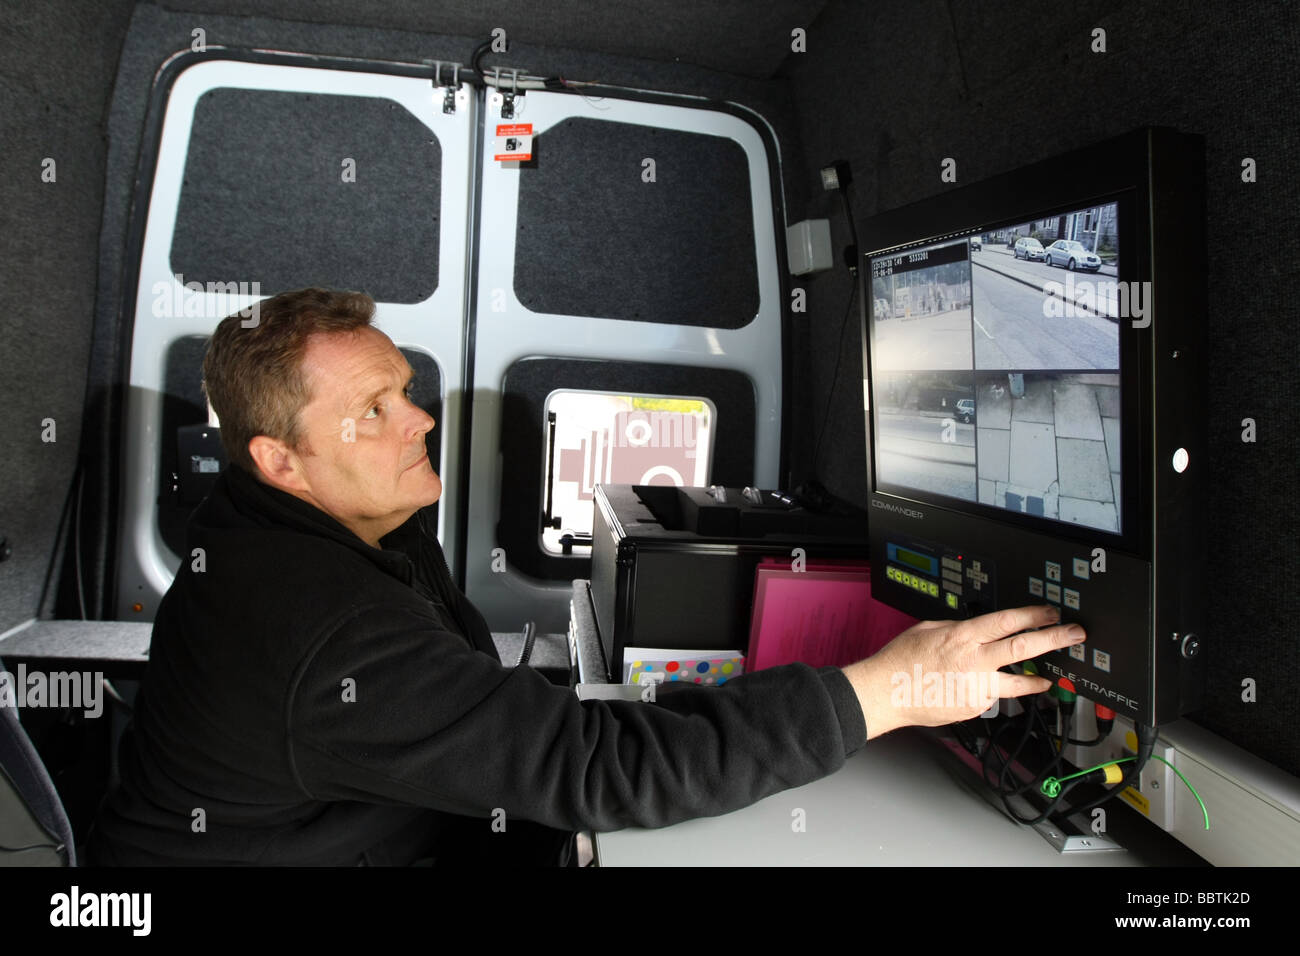 The operator's view from inside a Safety camera van in Aberdeen, Scotland, UK with traffic visible on the Commander - Stock Image